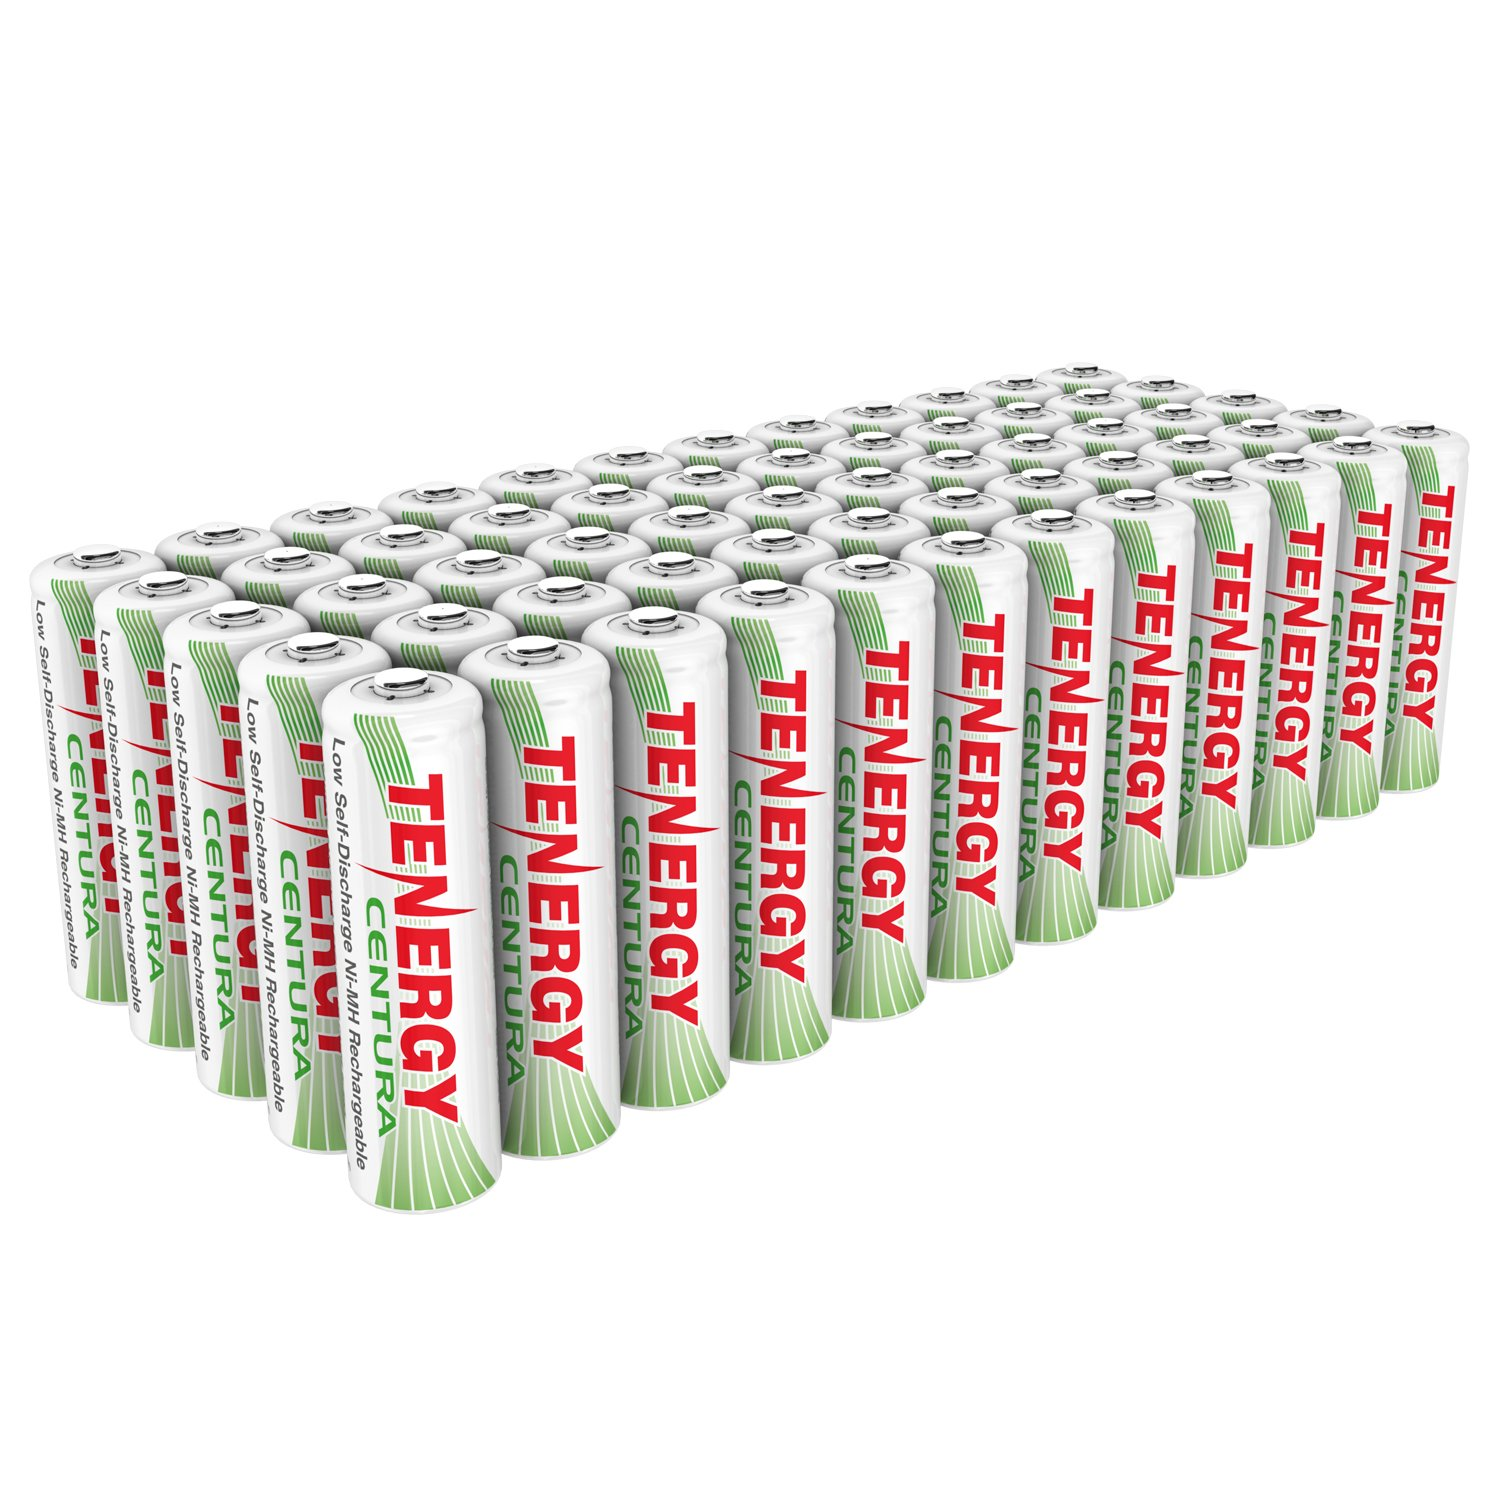 Tenergy AA Rechargeable NIMH Battery 2000mAh Pre-charged Household Battery Low Self Discharge High Performance AA Battery Pack for Remote Controller/Toys/Flashlight/Mice (60 PCS)